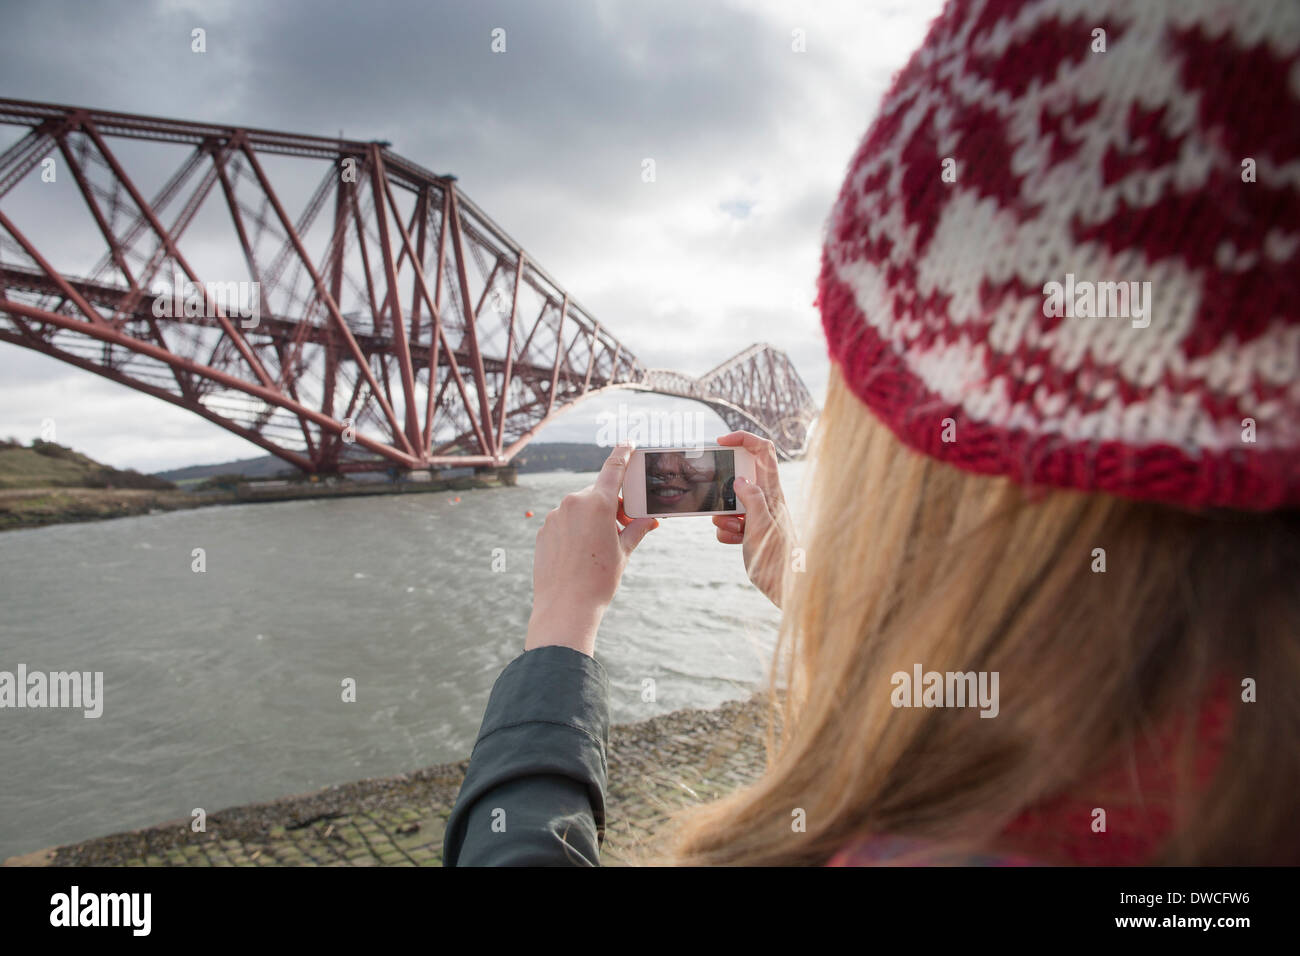 A young woman taking photograph of the Forth Rail Bridge in Queensferry, near Edinburgh, Scotland - Stock Image